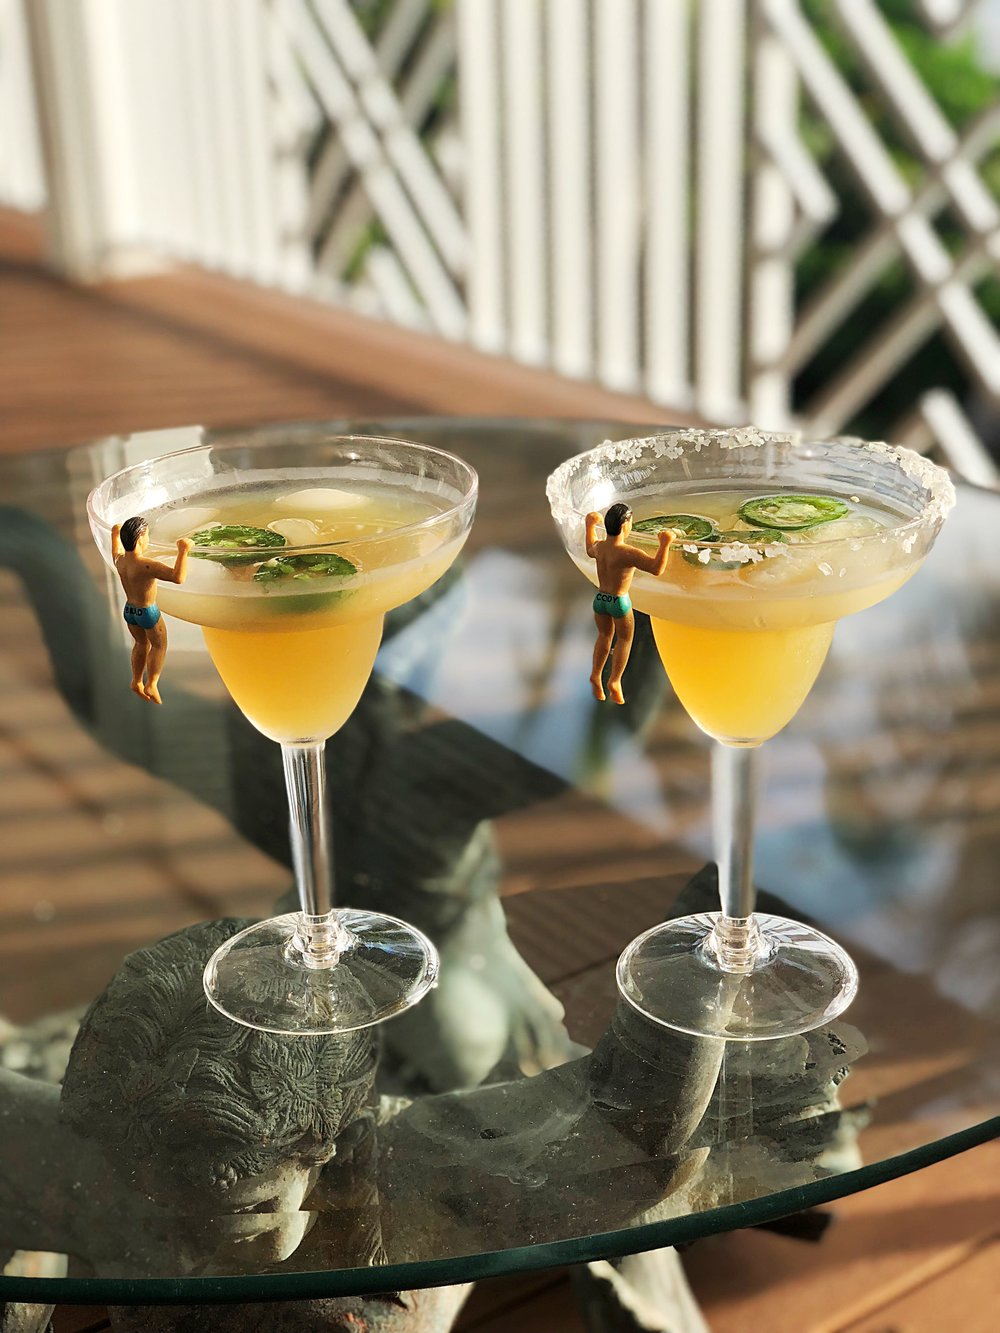 TB spicy margs: jalapeno infused tequila, grand marnier, lime, simply syrup